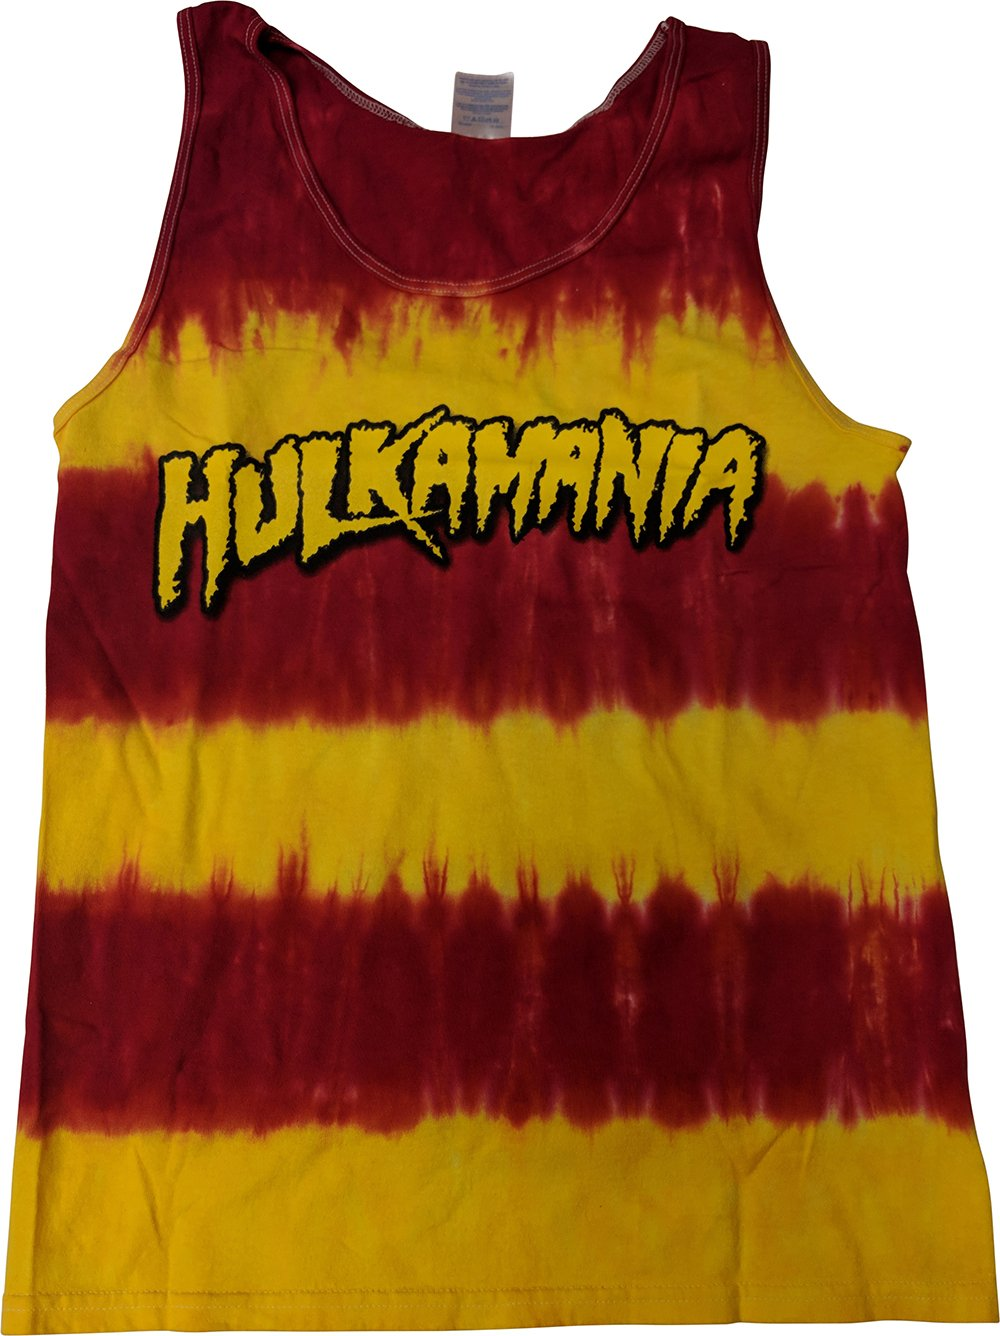 Hulk Hogan Hulkamania Tye Die Mens Tank Top by Hybrid Tees